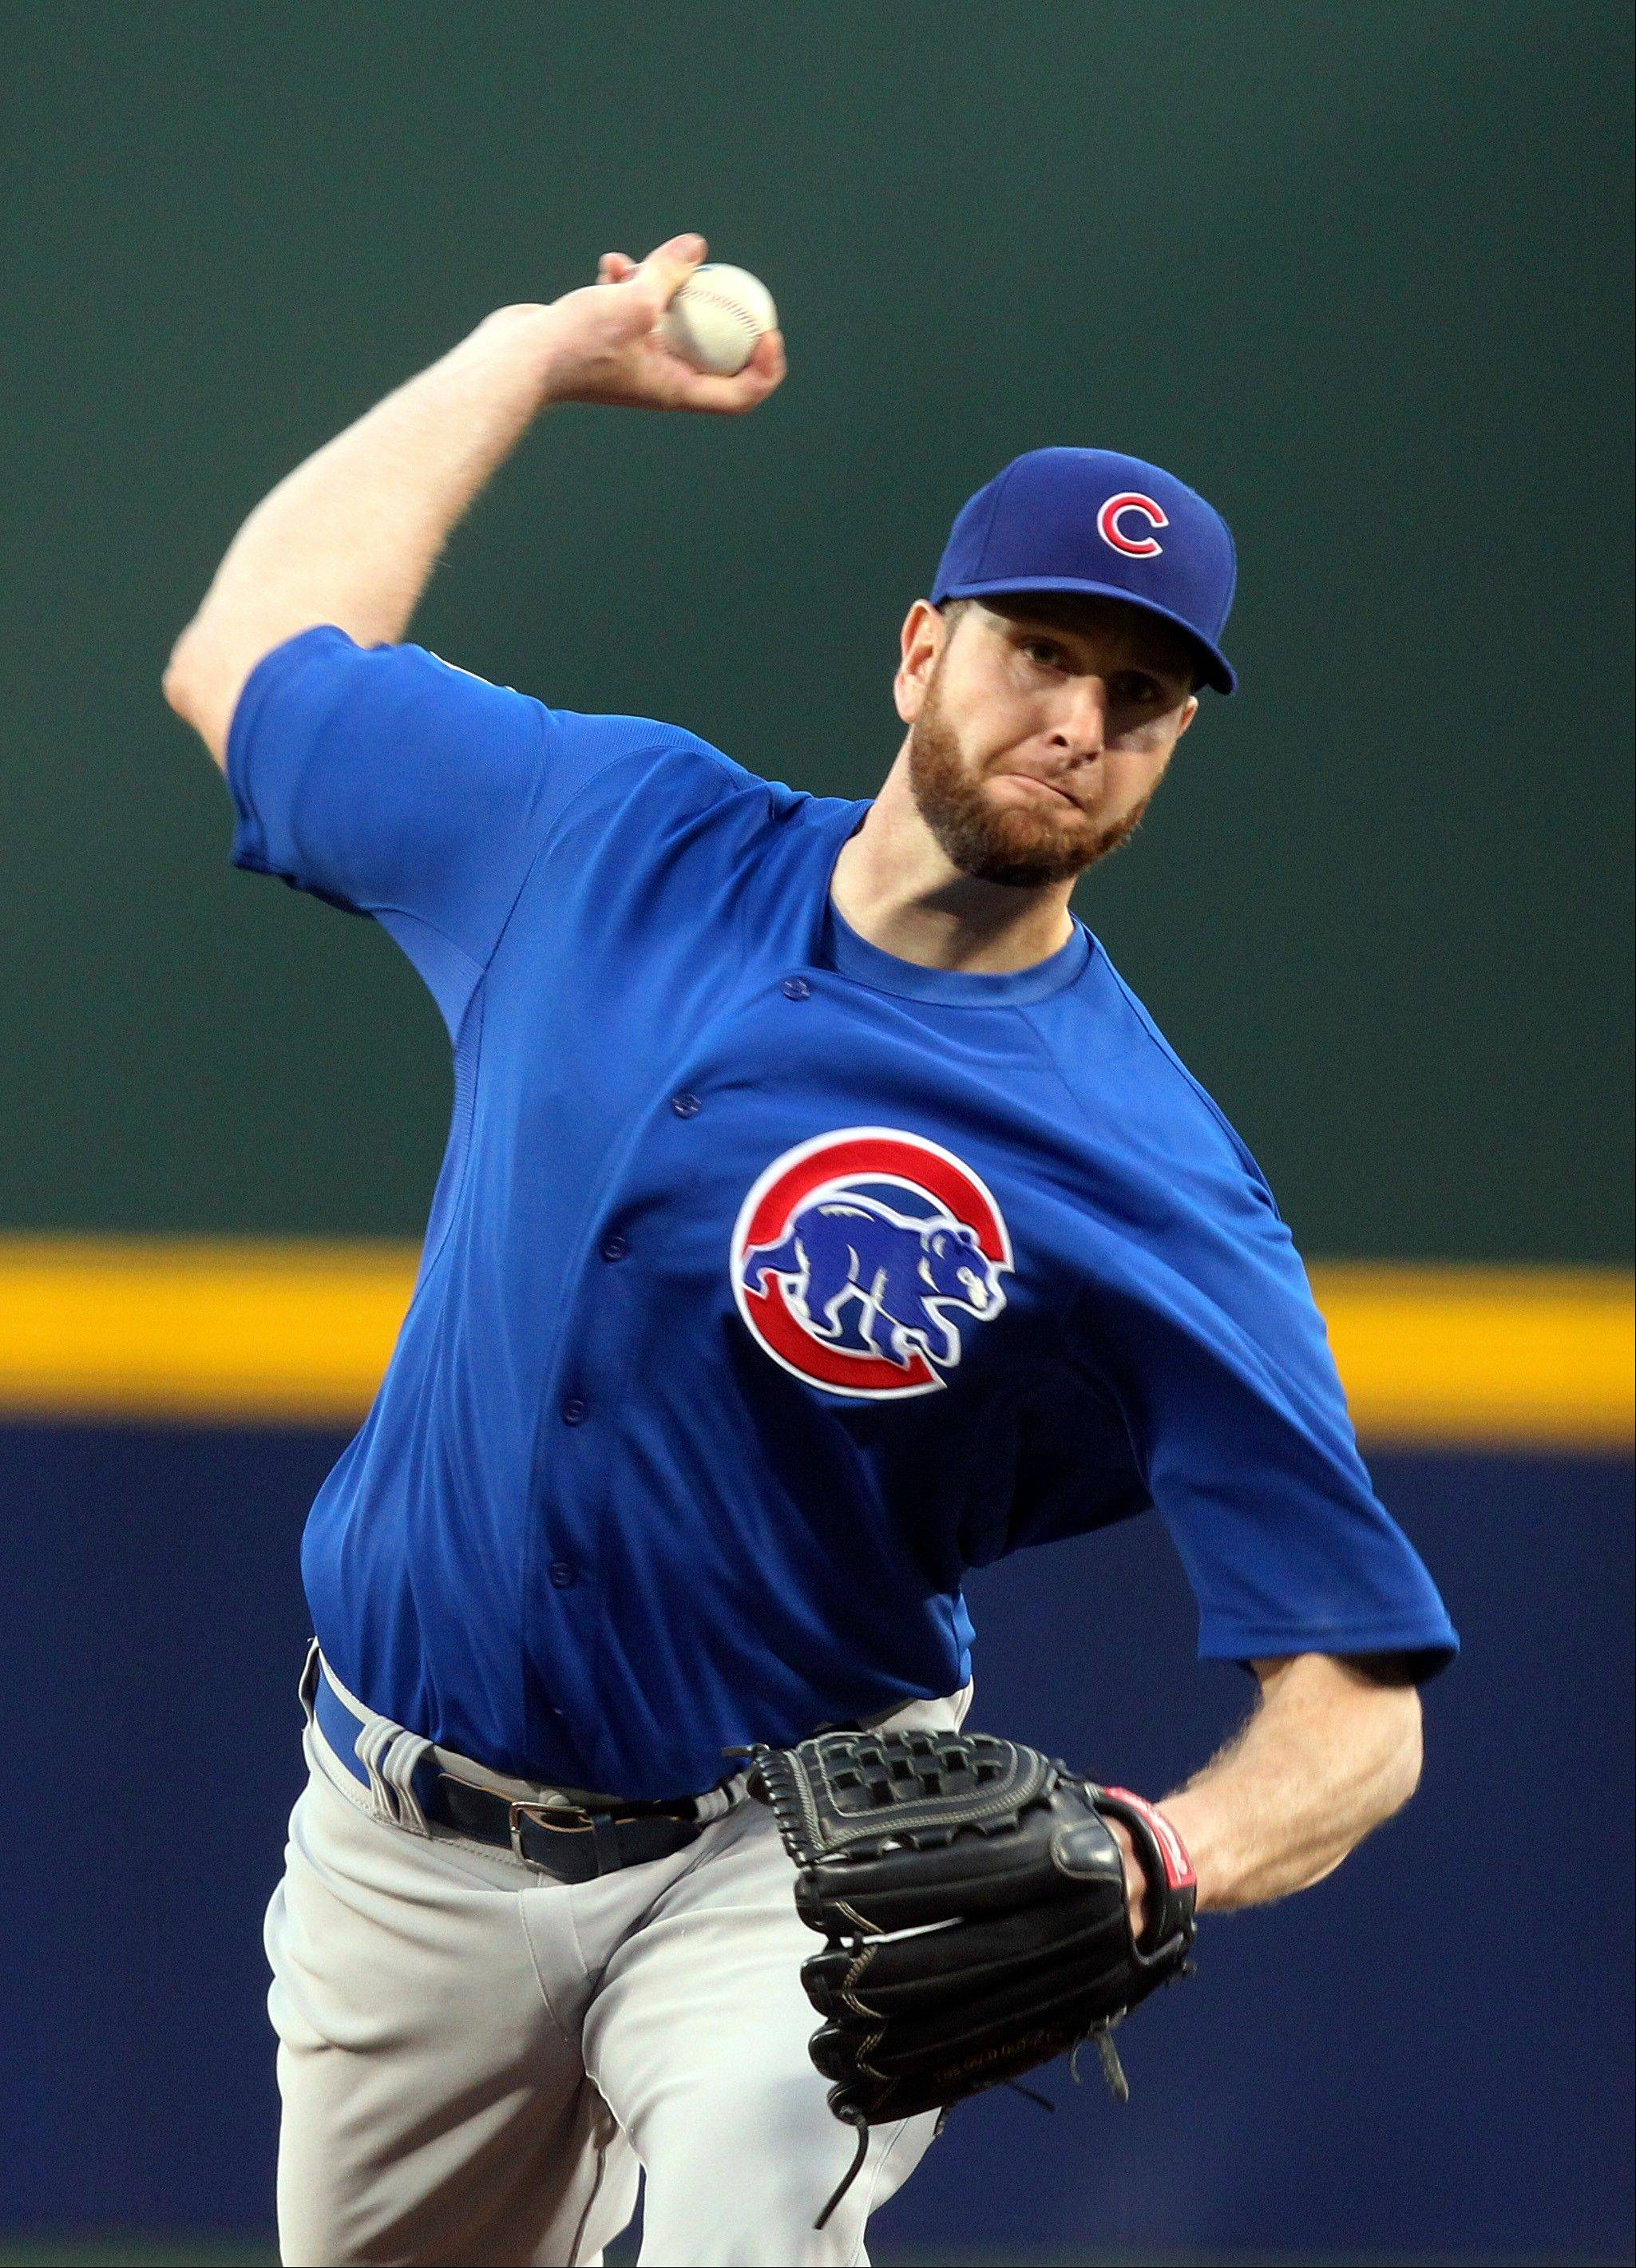 Chicago Cubs starting pitcher Scott Feldman pitches against the Atlanta Braves in the first inning of a baseball game, Friday, April 5, 2013, in Atlanta. (AP Photo/Butch Dill)